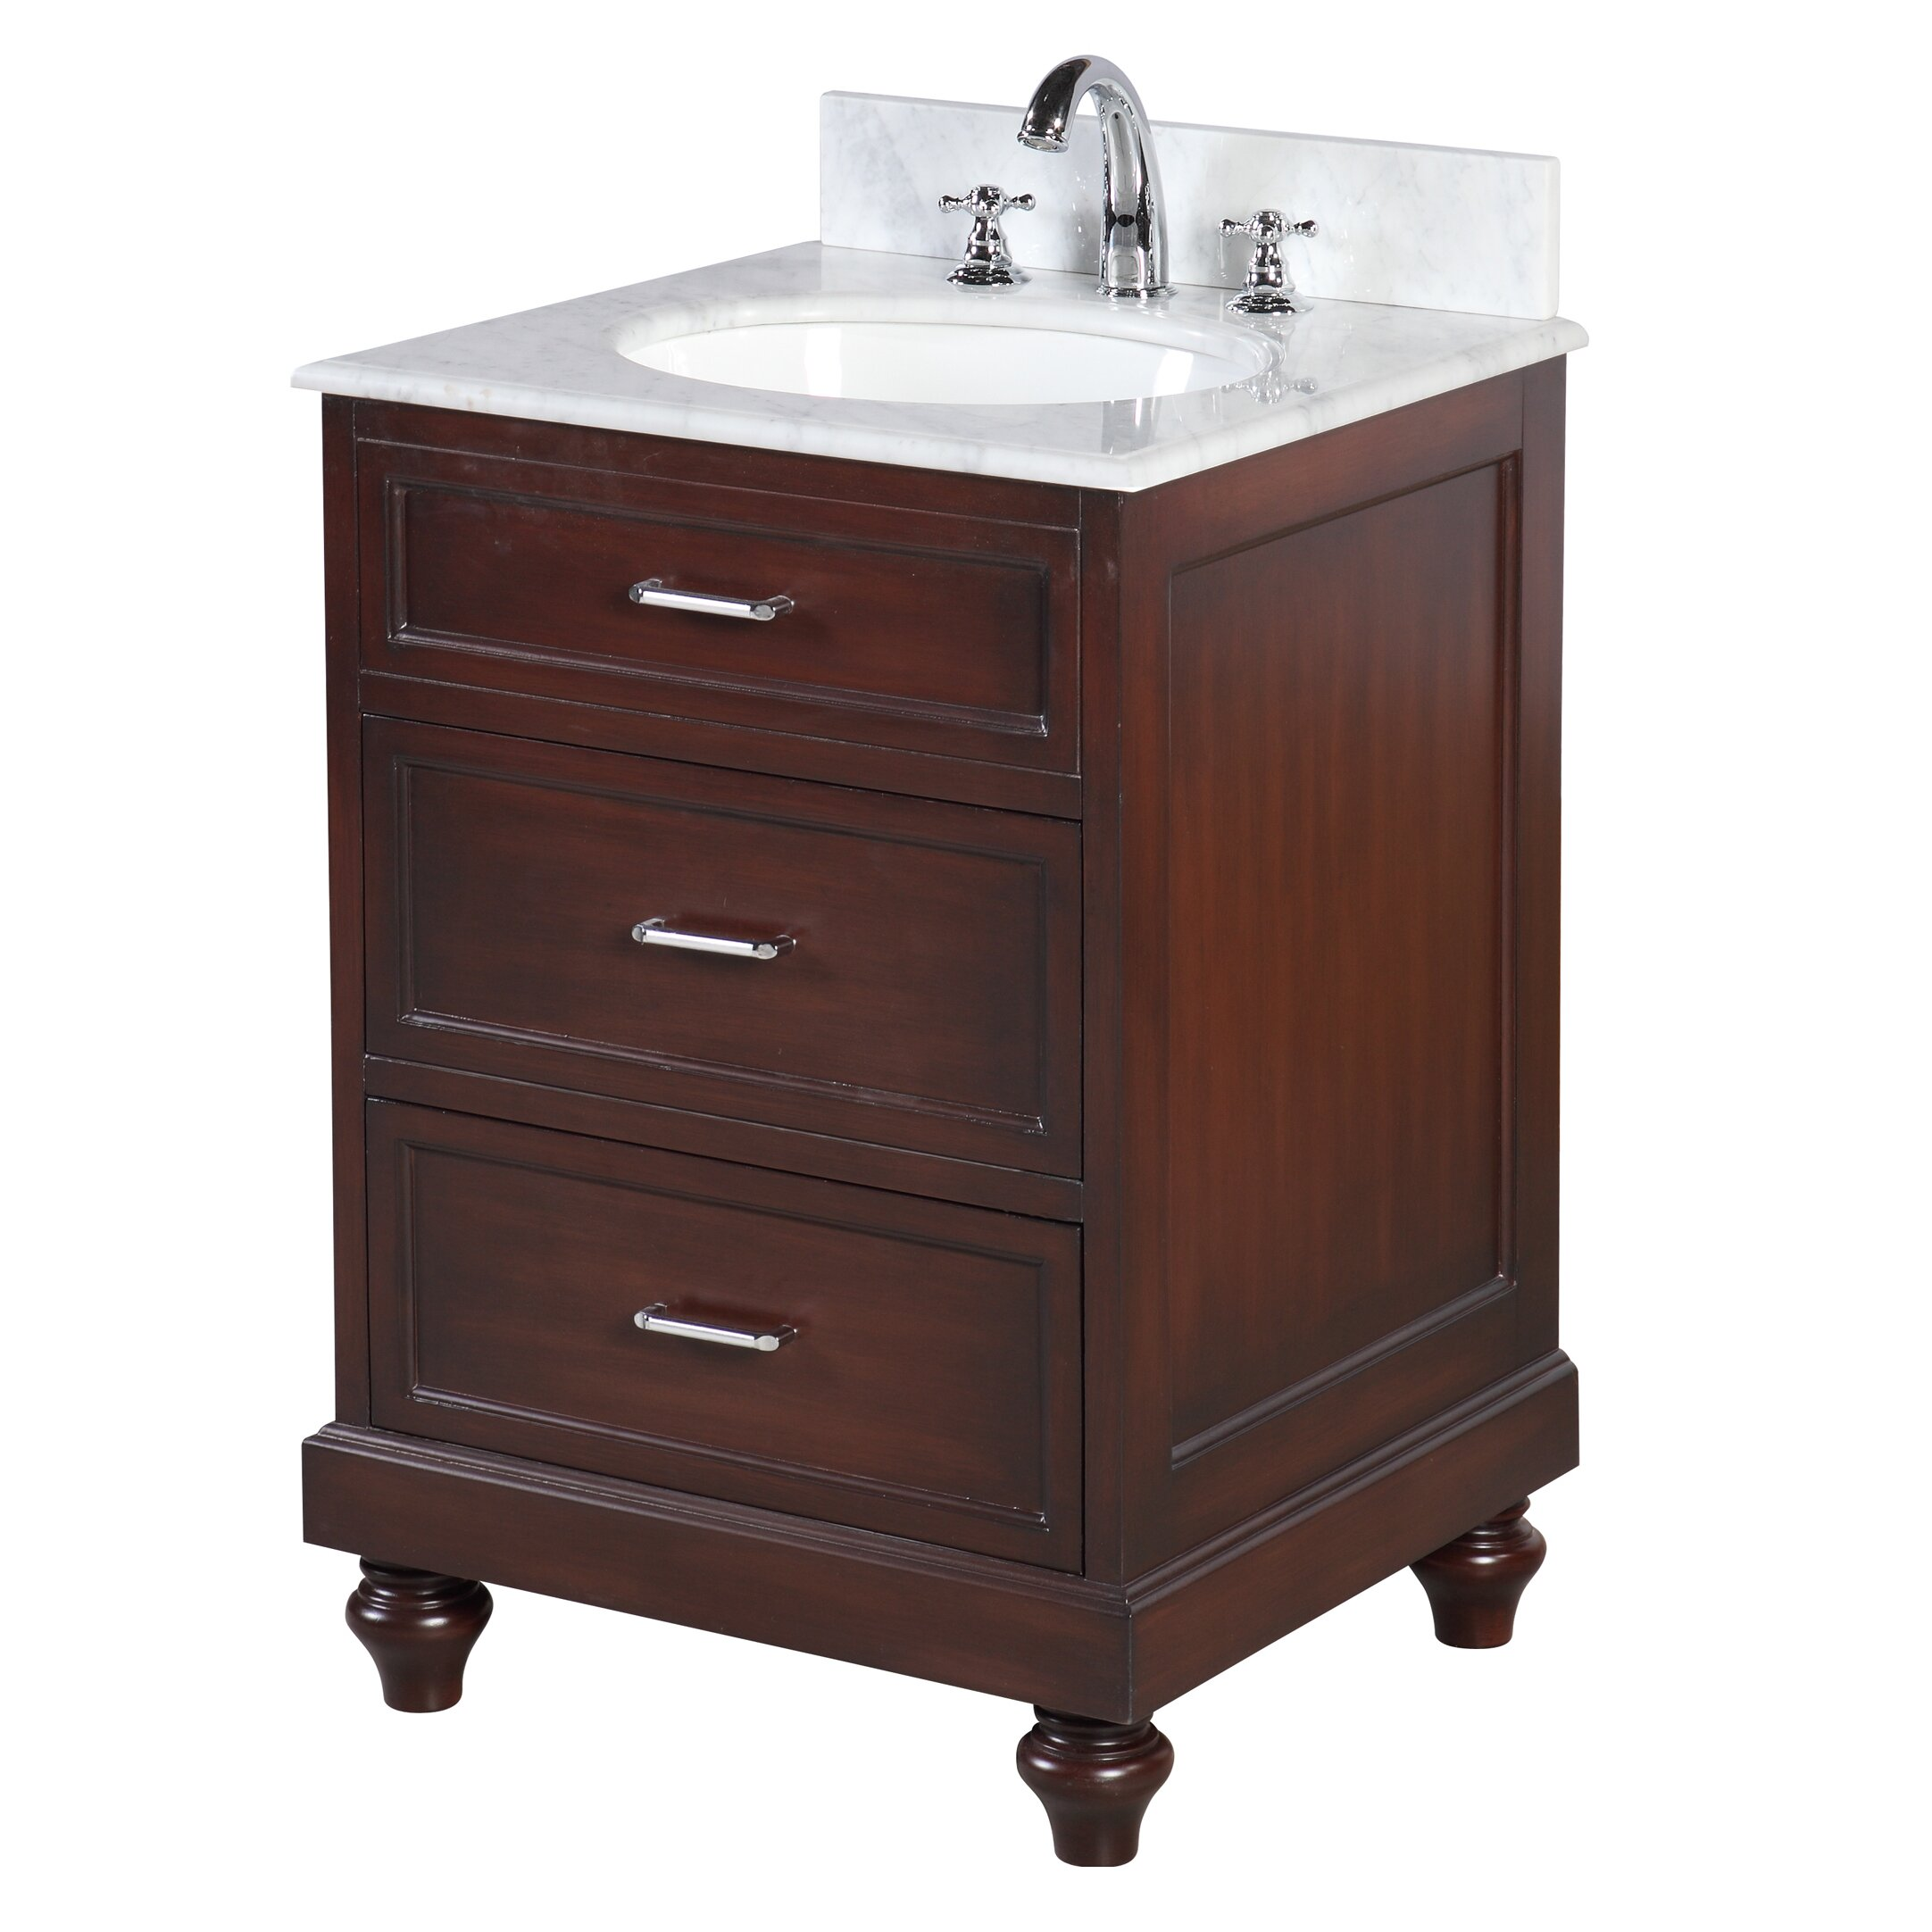 "KBC Amelia 24"" Single Bathroom Vanity Set & Reviews"